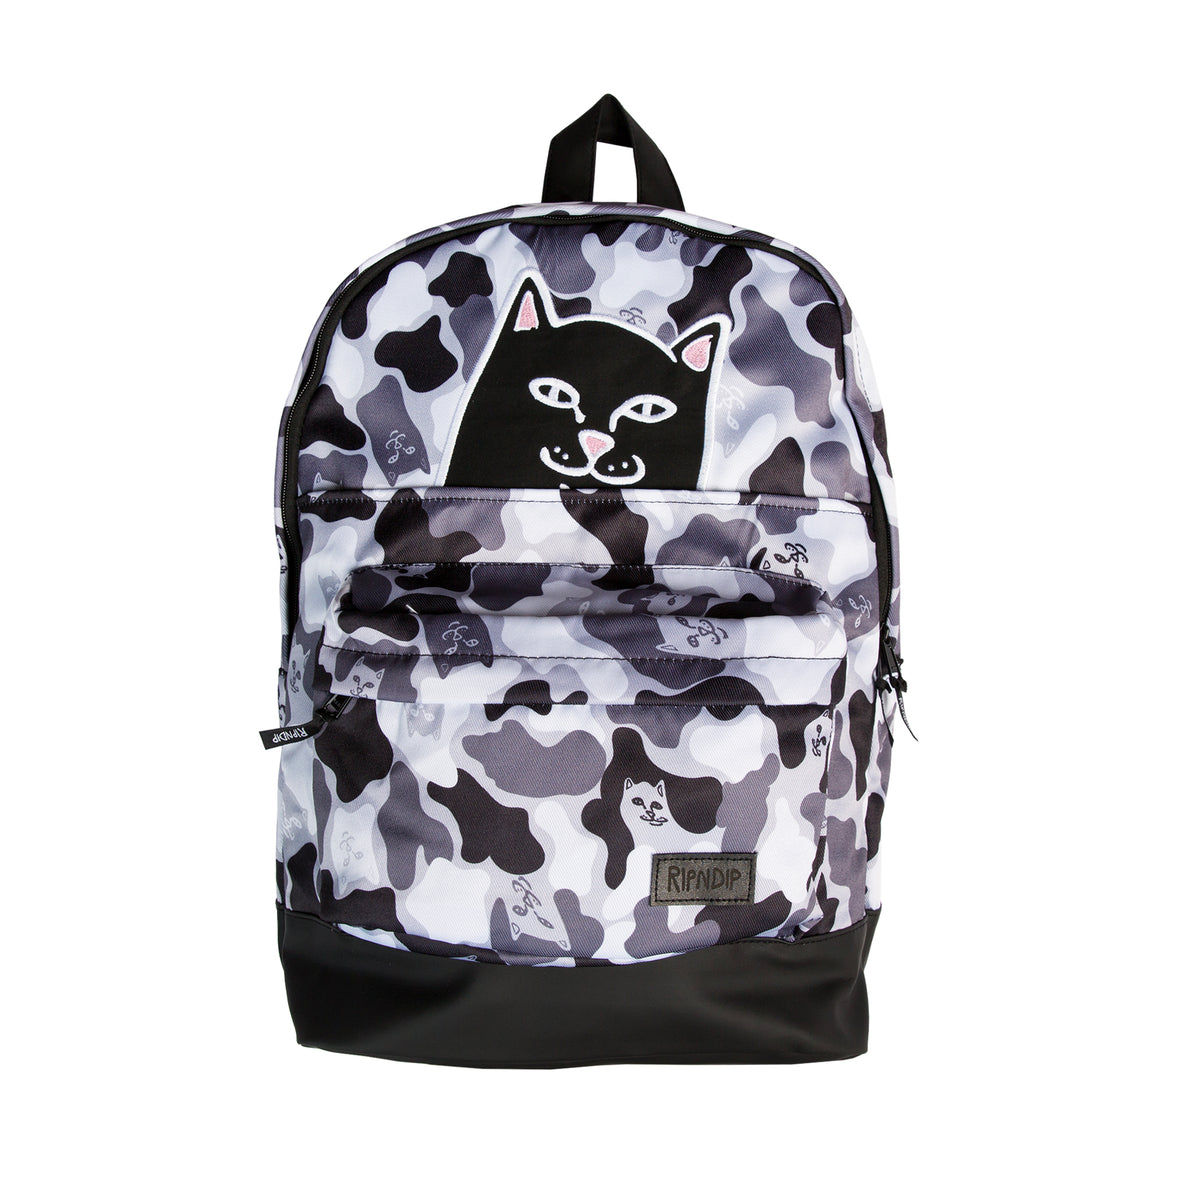 Blizzard Backpack (Black) by Ripndip